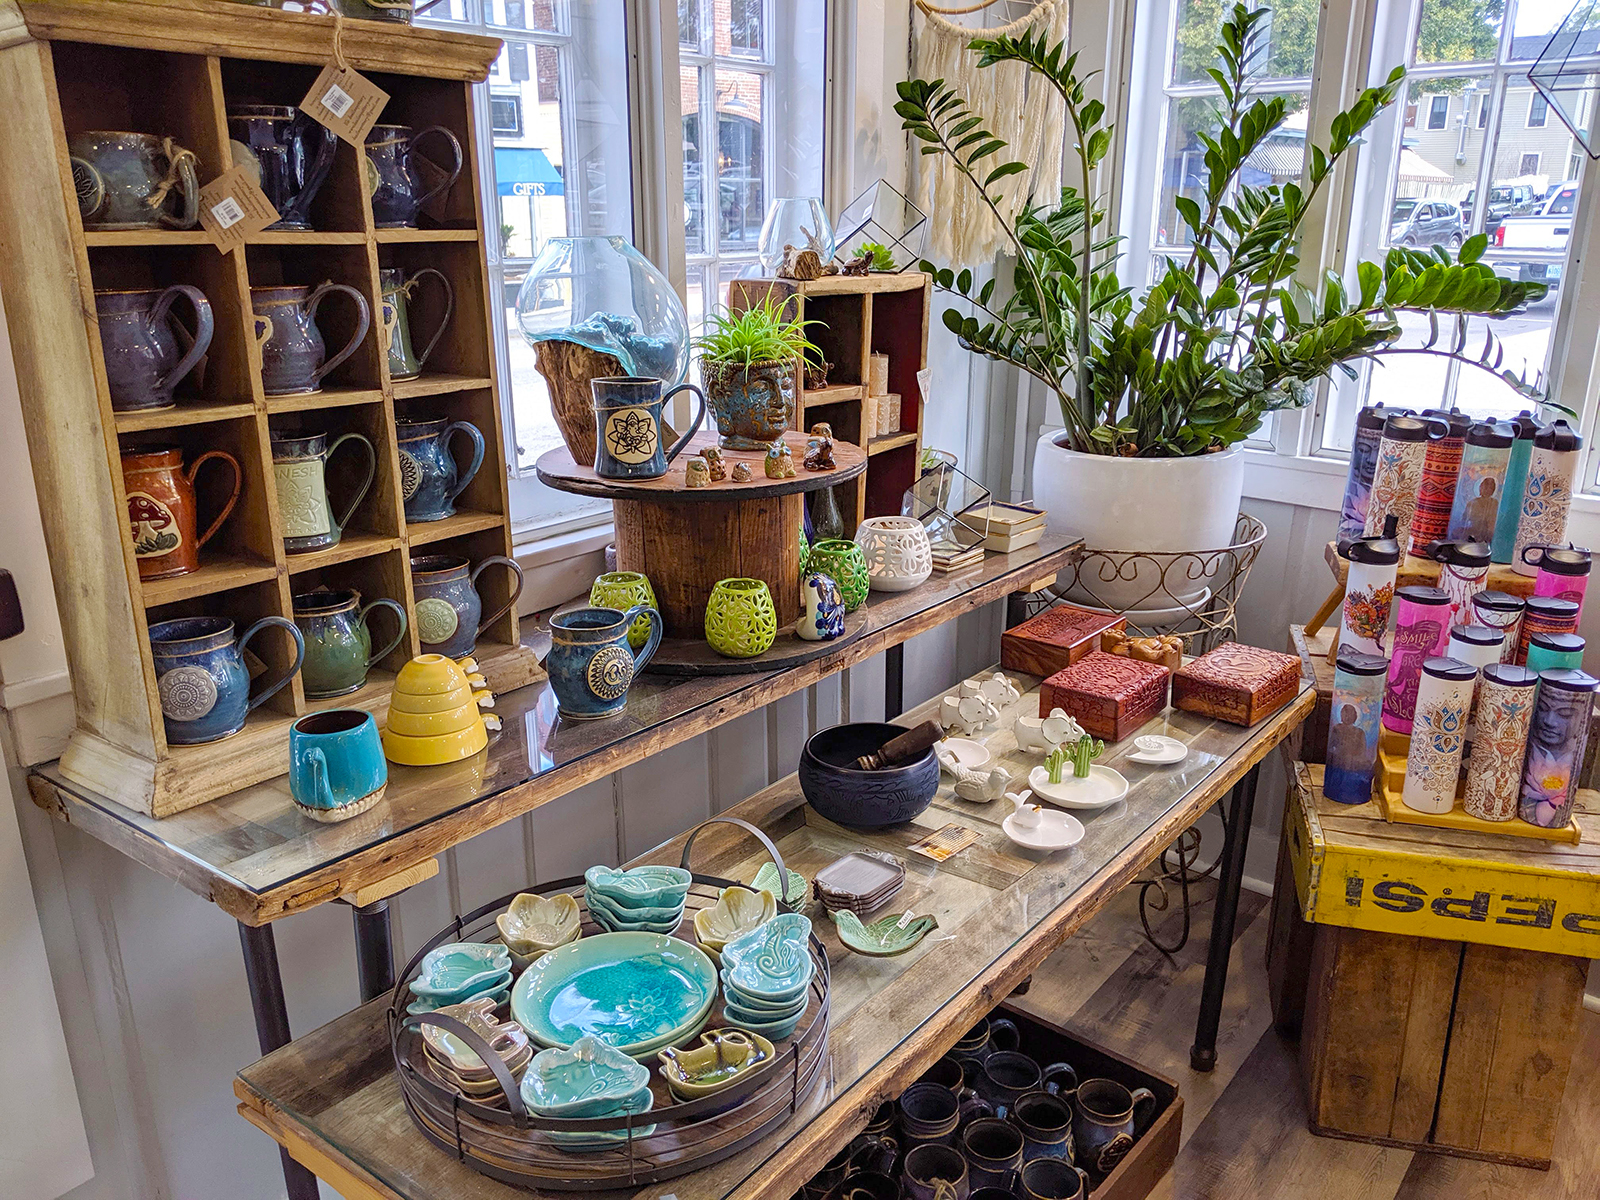 Despite its small size and walkability, downtown Exeter has a surprising number of shops. Serendipity is a great choice for housewares, gifts, and clothing; photo by Robin Catalano.